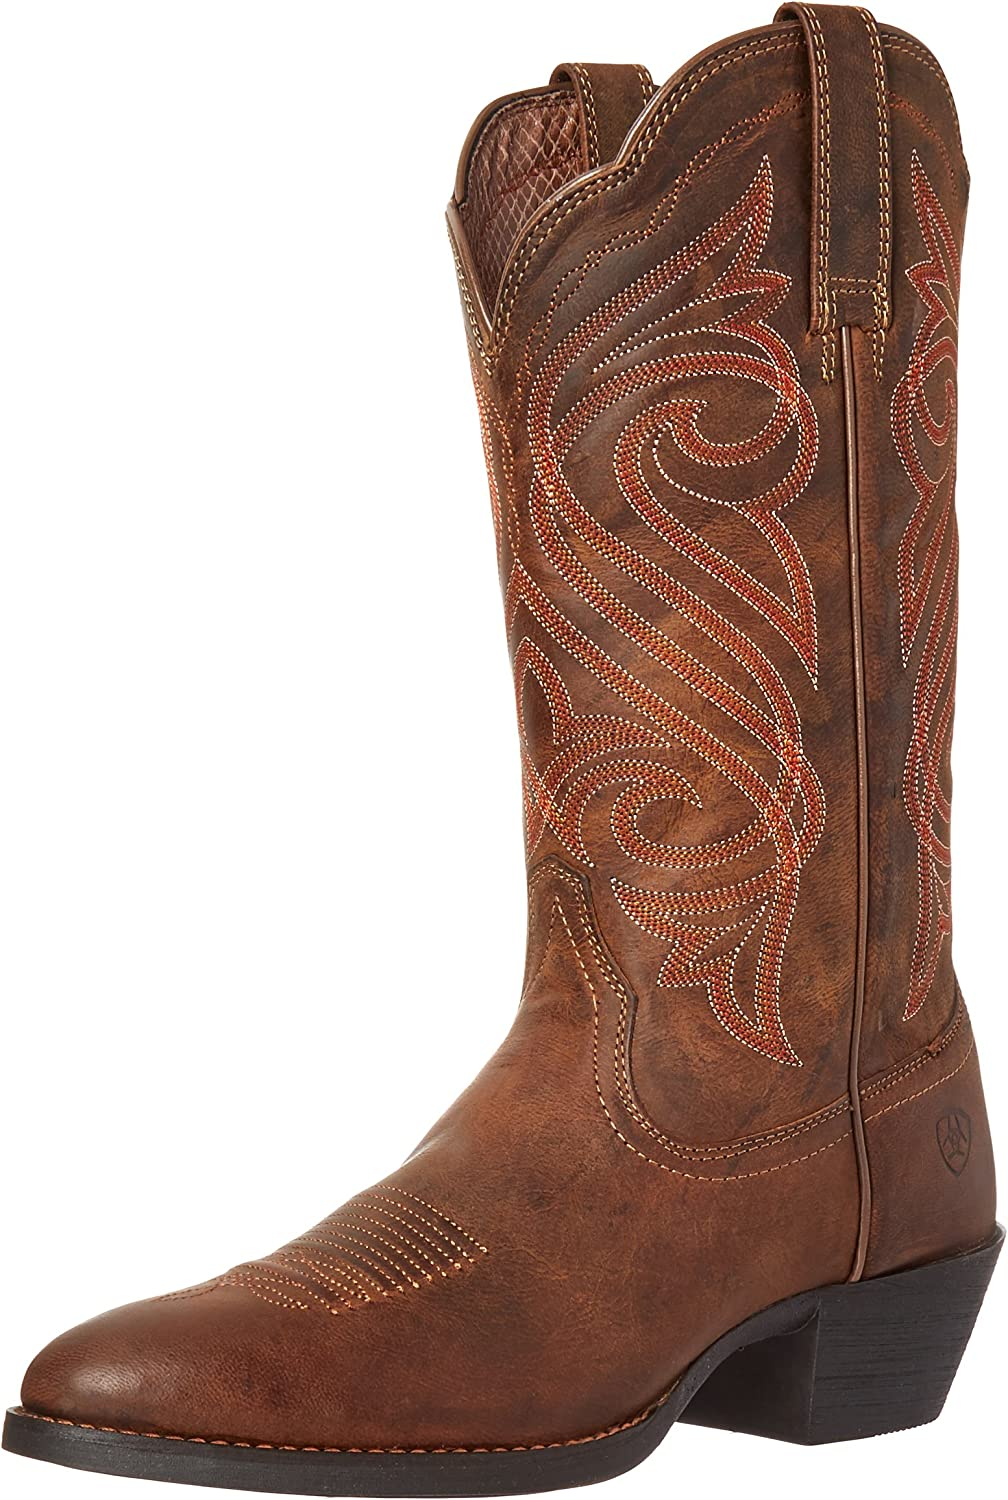 ARIAT Womens Round Up R Toe Western Boot